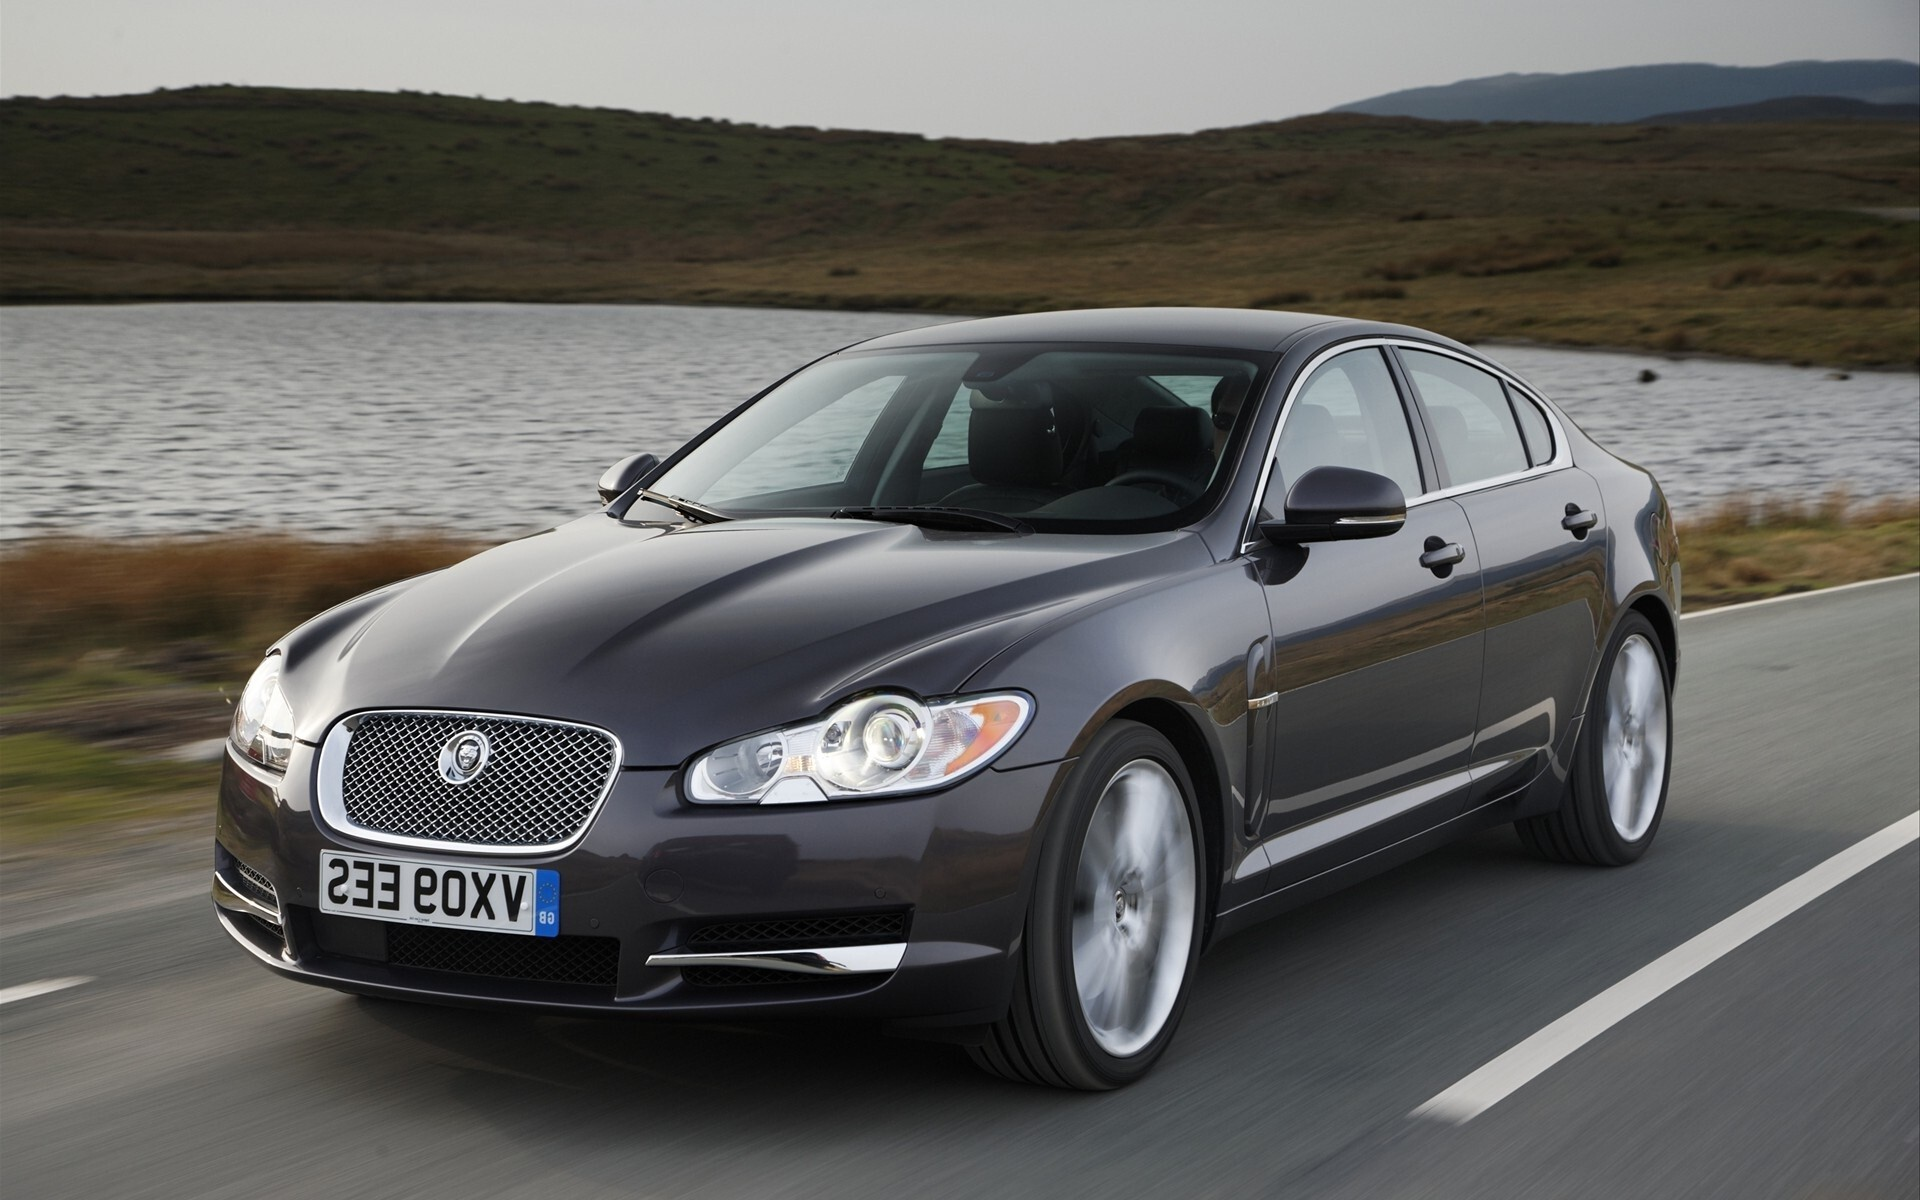 Luxury New Jaguar Car Hd Wallpaper Hd Wallpapers